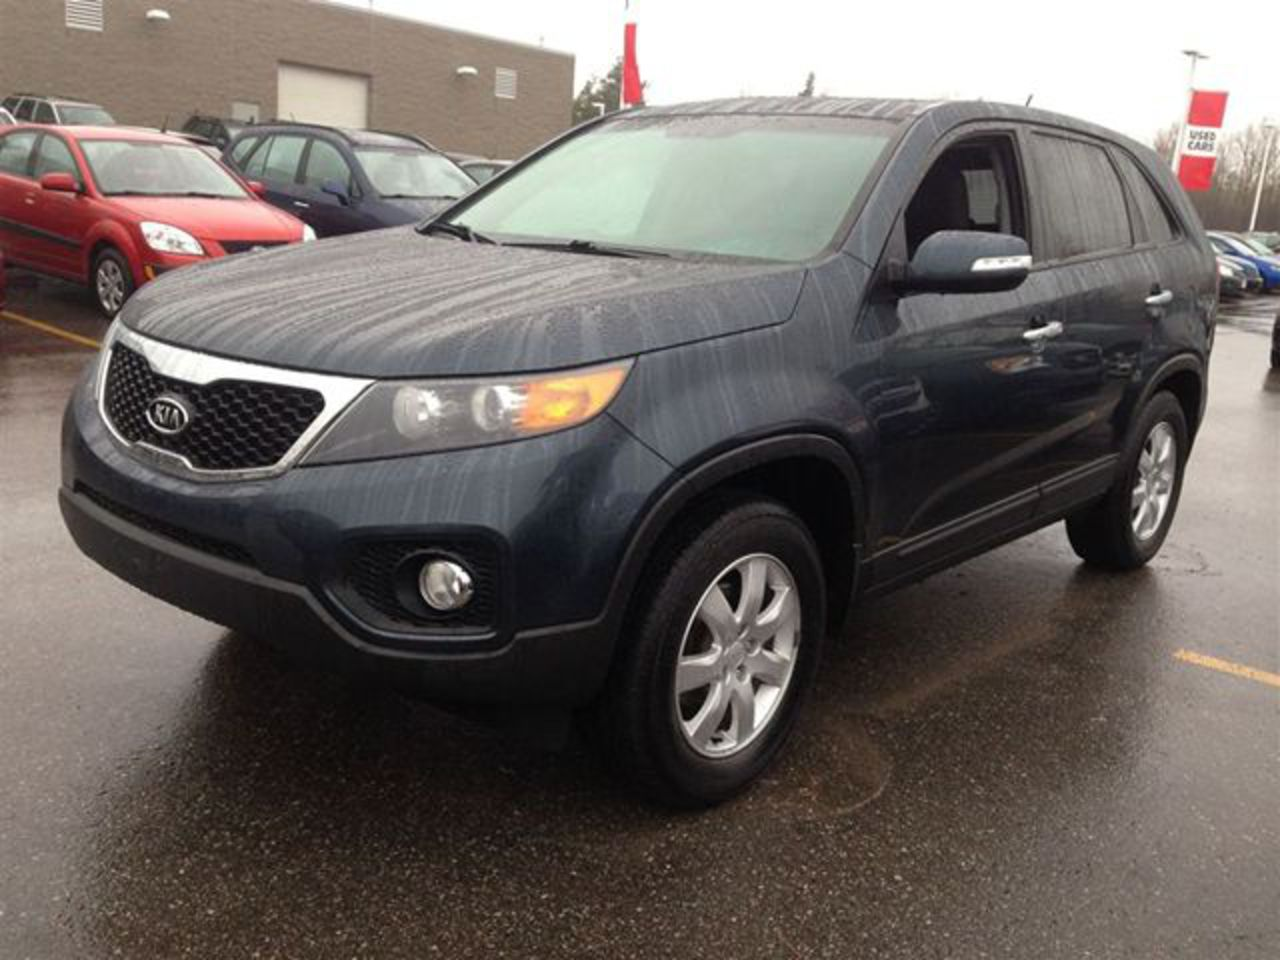 2011 Kia Sorento LX Dark Blue | DURHAM KIA | Wheels.